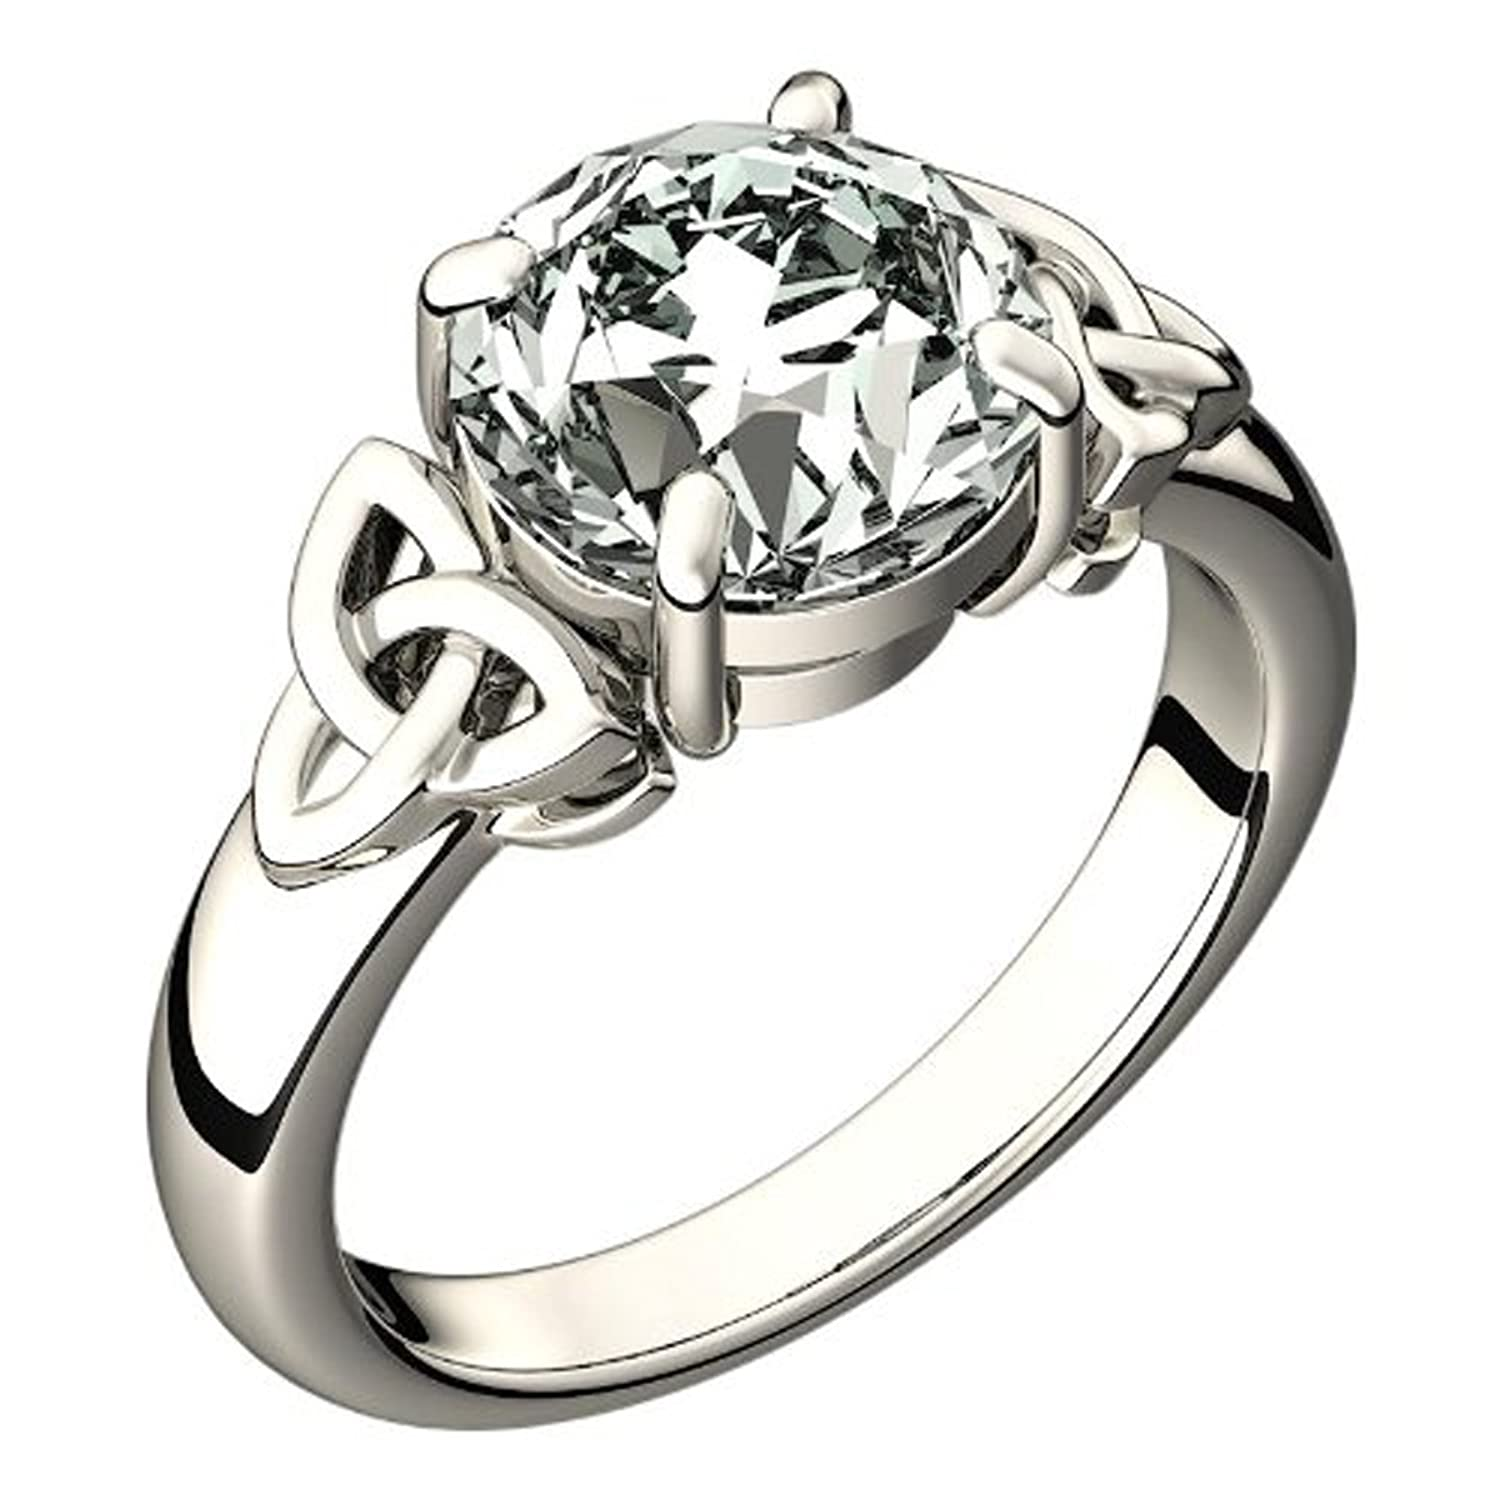 lab pure wg engagement rings grown image diamond knot encrusted love main ring infinity ignis p